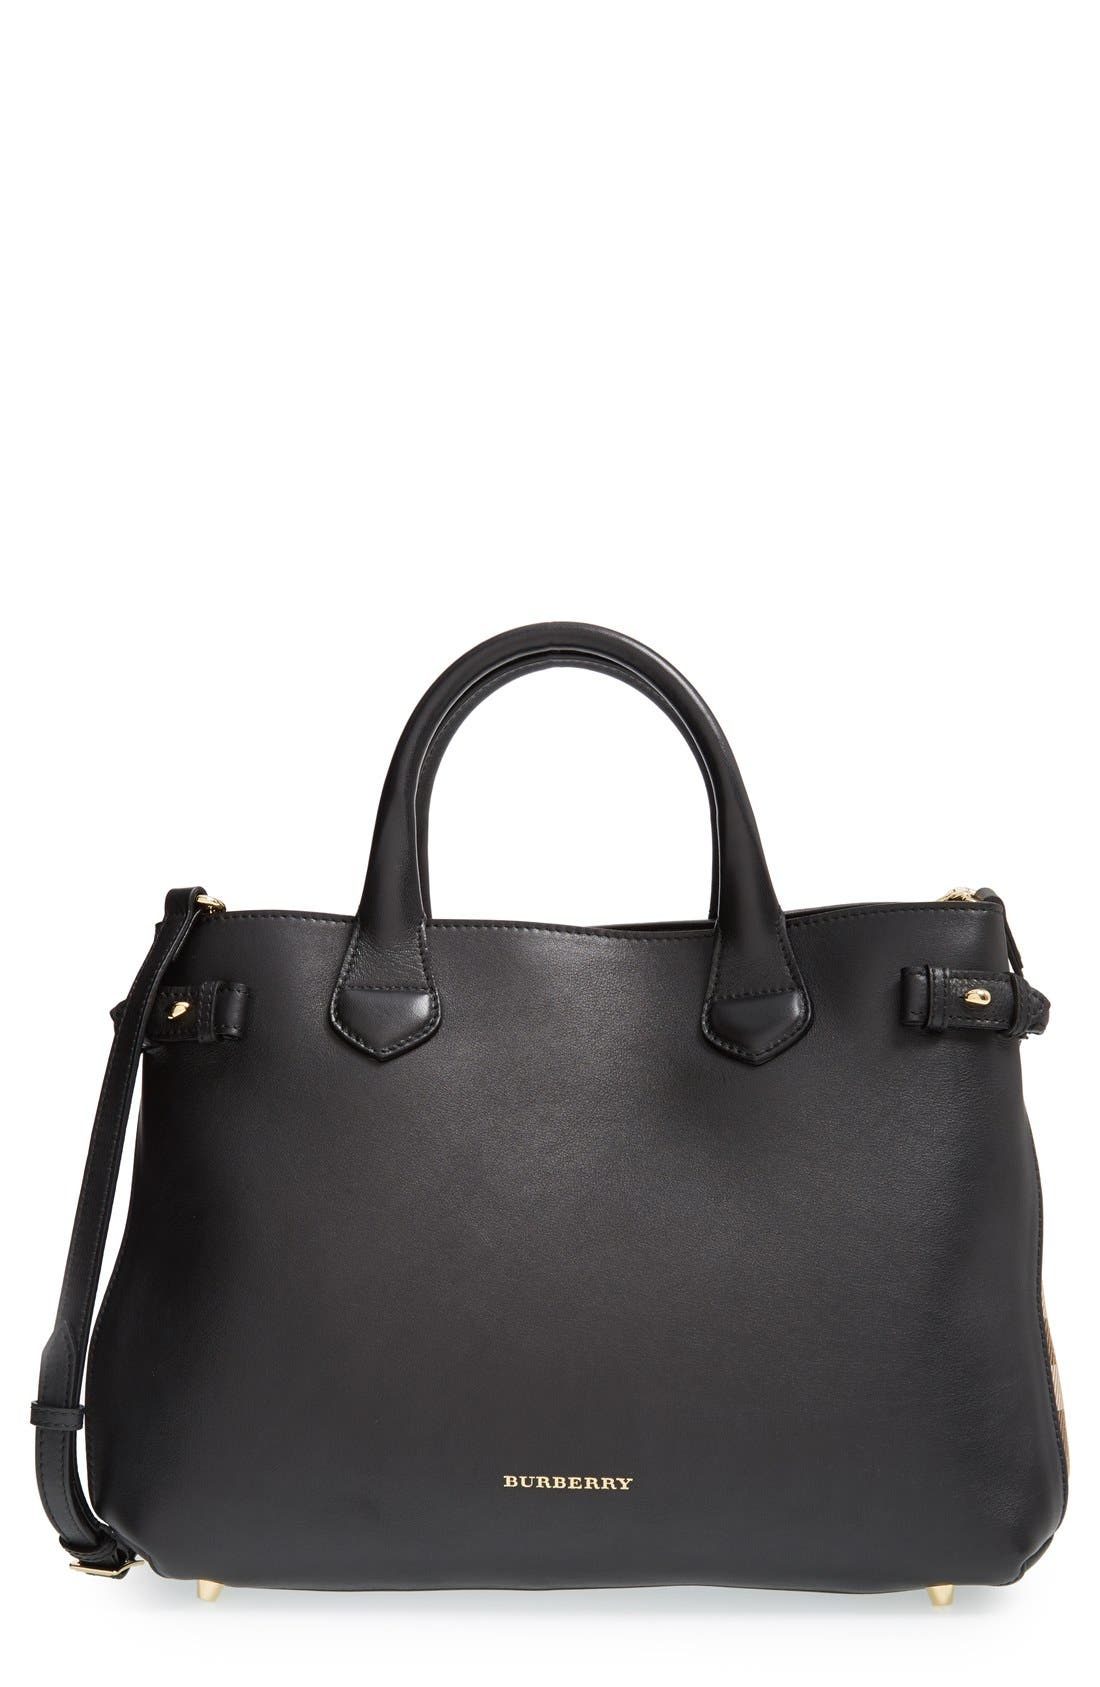 Alternate Image 1 Selected - Burberry 'Medium Banner' House Check Leather Tote